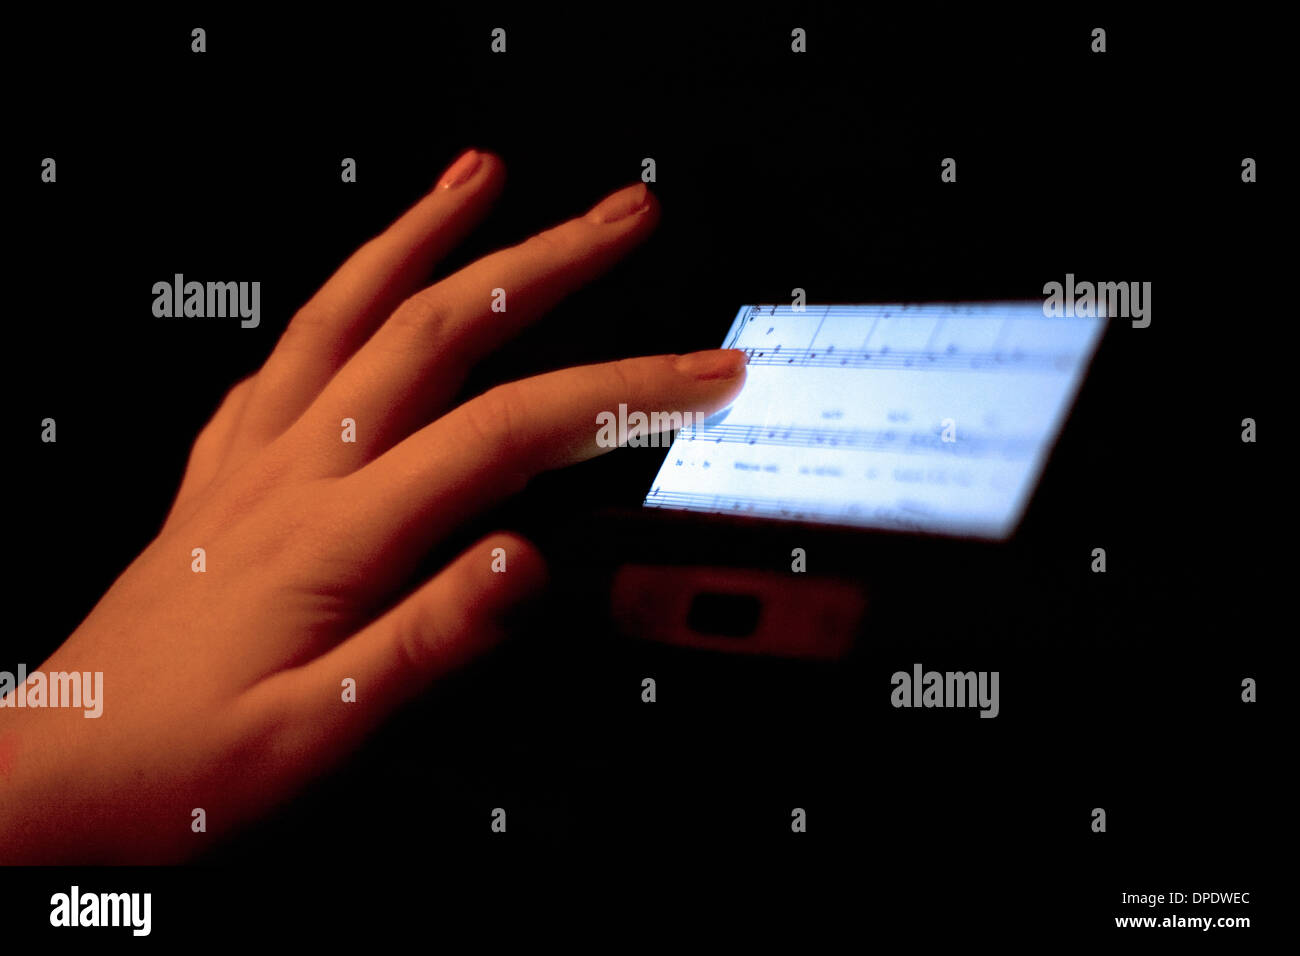 Close up of hand using touchscreen displaying sheet music - Stock Image